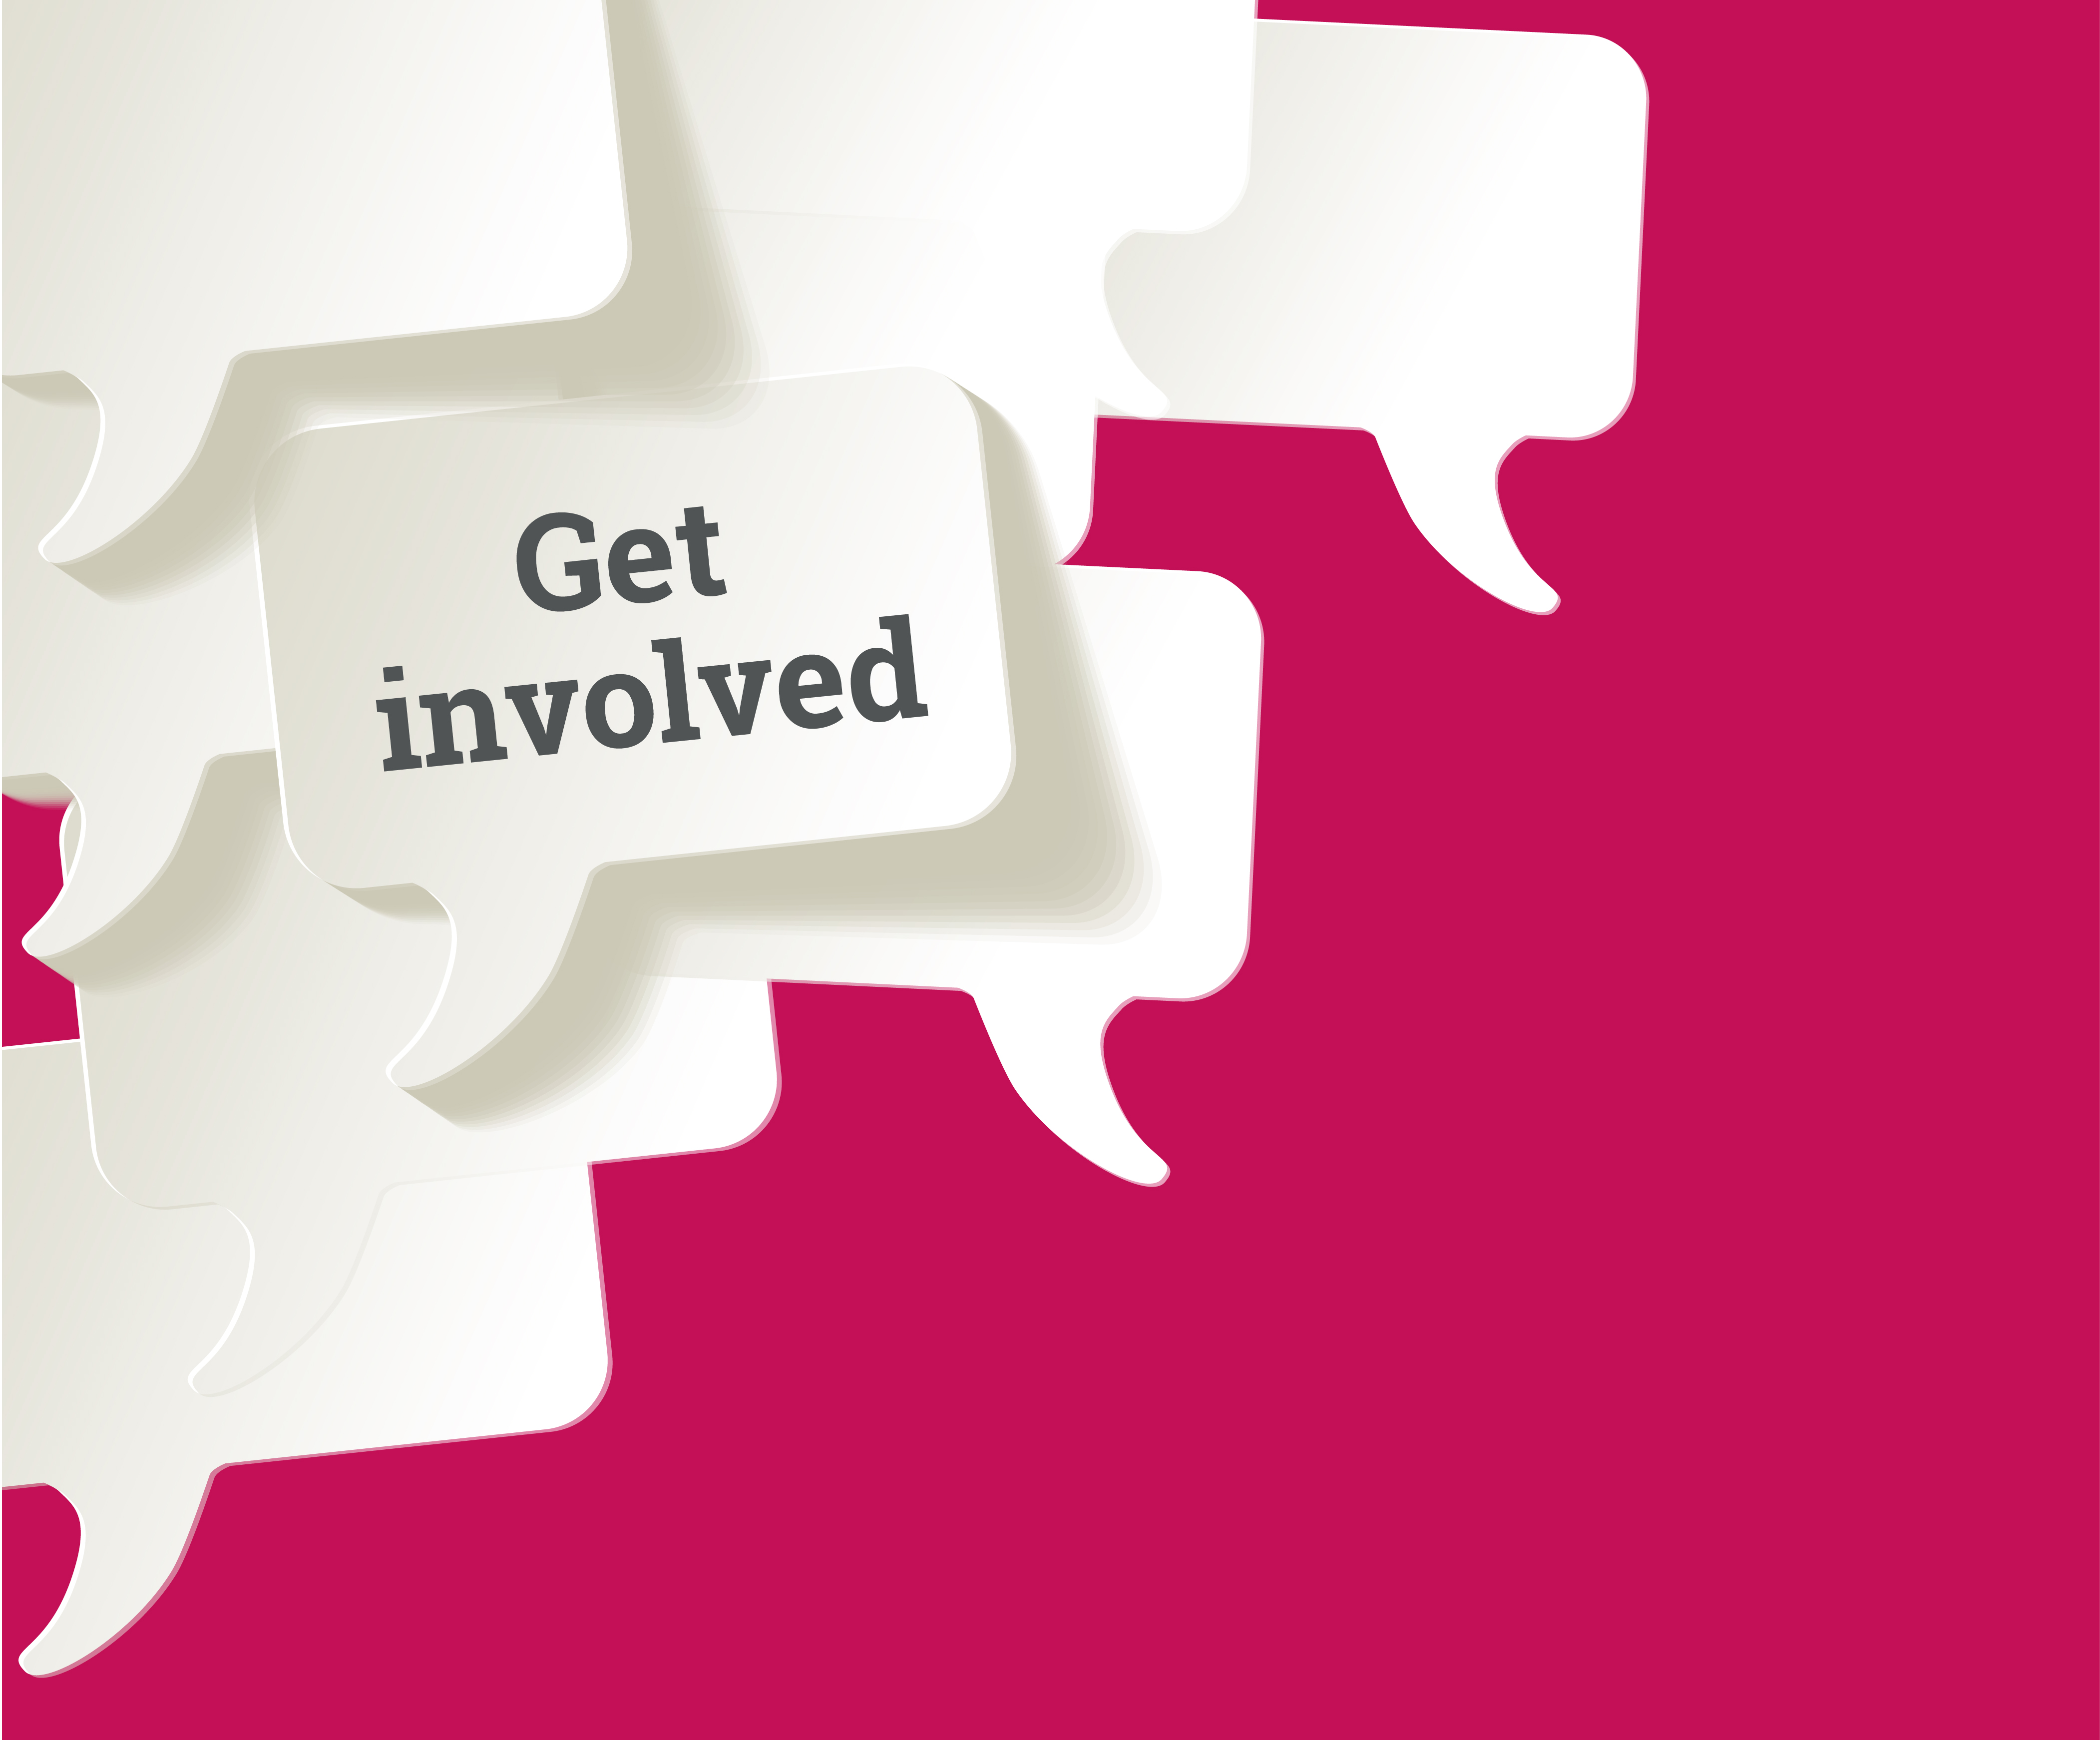 White speech bubbles set against a red background. One contains the caption 'Get involved'.